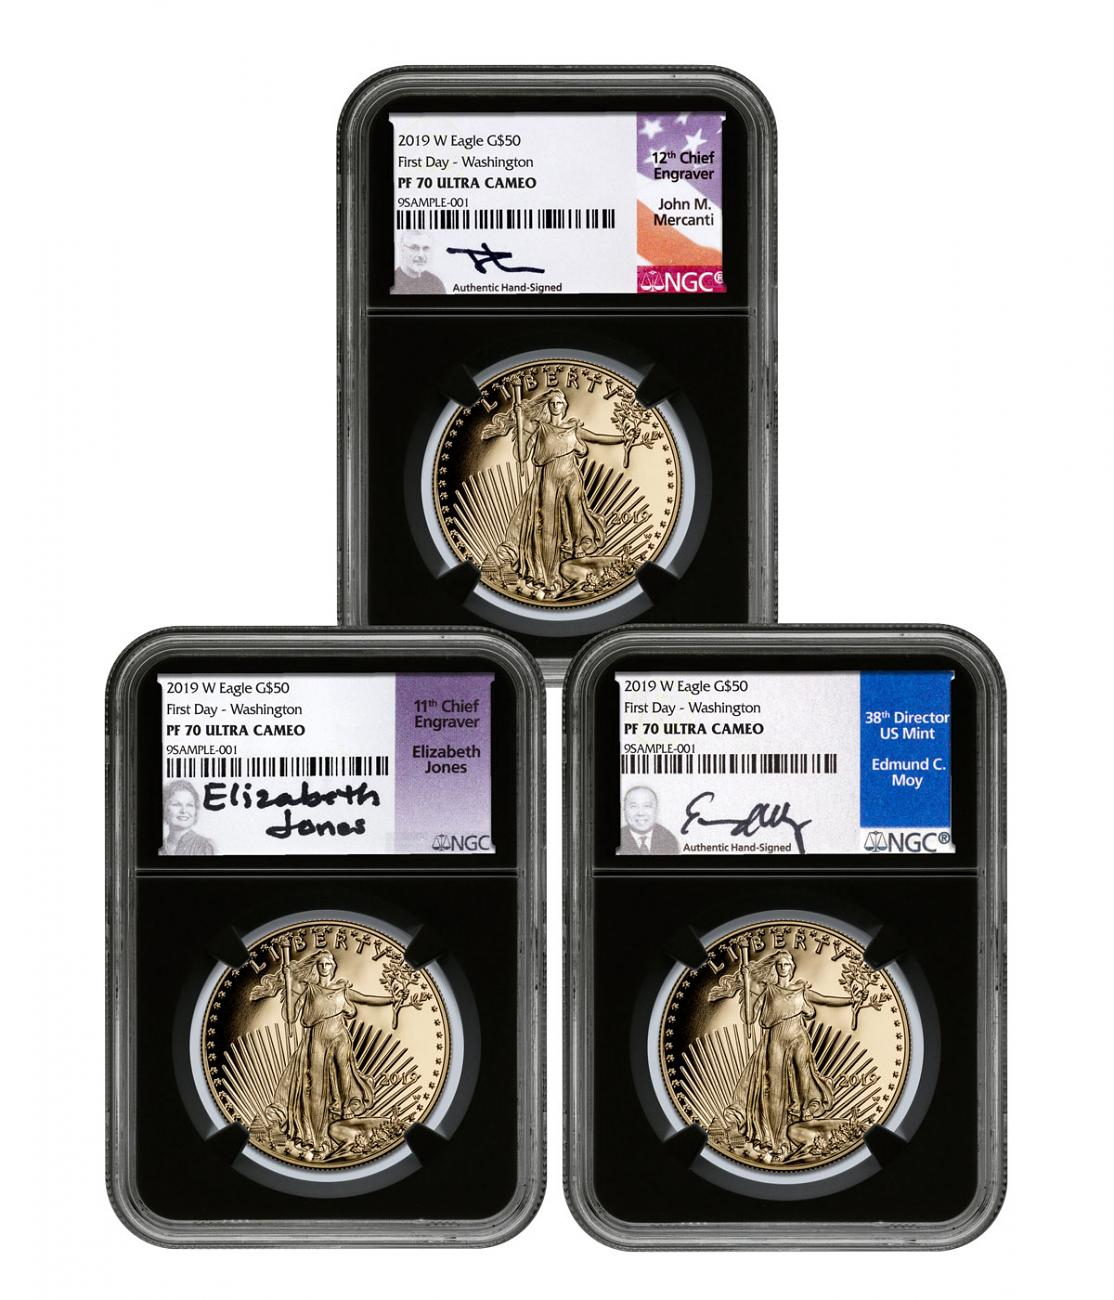 2019-W 1 oz Gold American Eagle 3-Coin Set Proof $50 Scarce and Unique Coin Division NGC PF70 First Day of Issue - Washington, D.C. Black Core Holder Mercanti + Jones + Moy Signed Labels